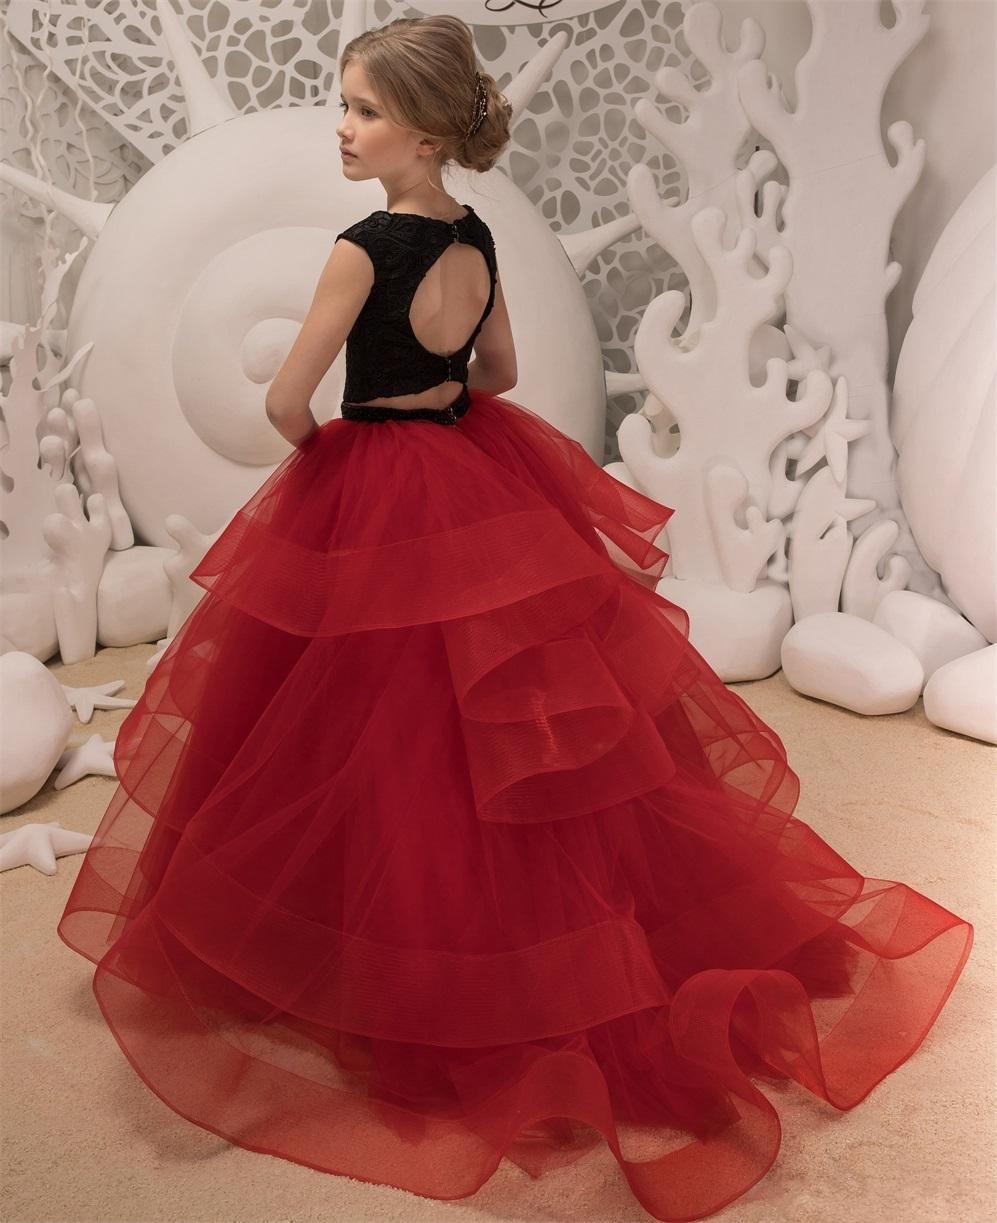 black-and-red-flower-girls-dresses-2018-ruffles (1)_conew1 -